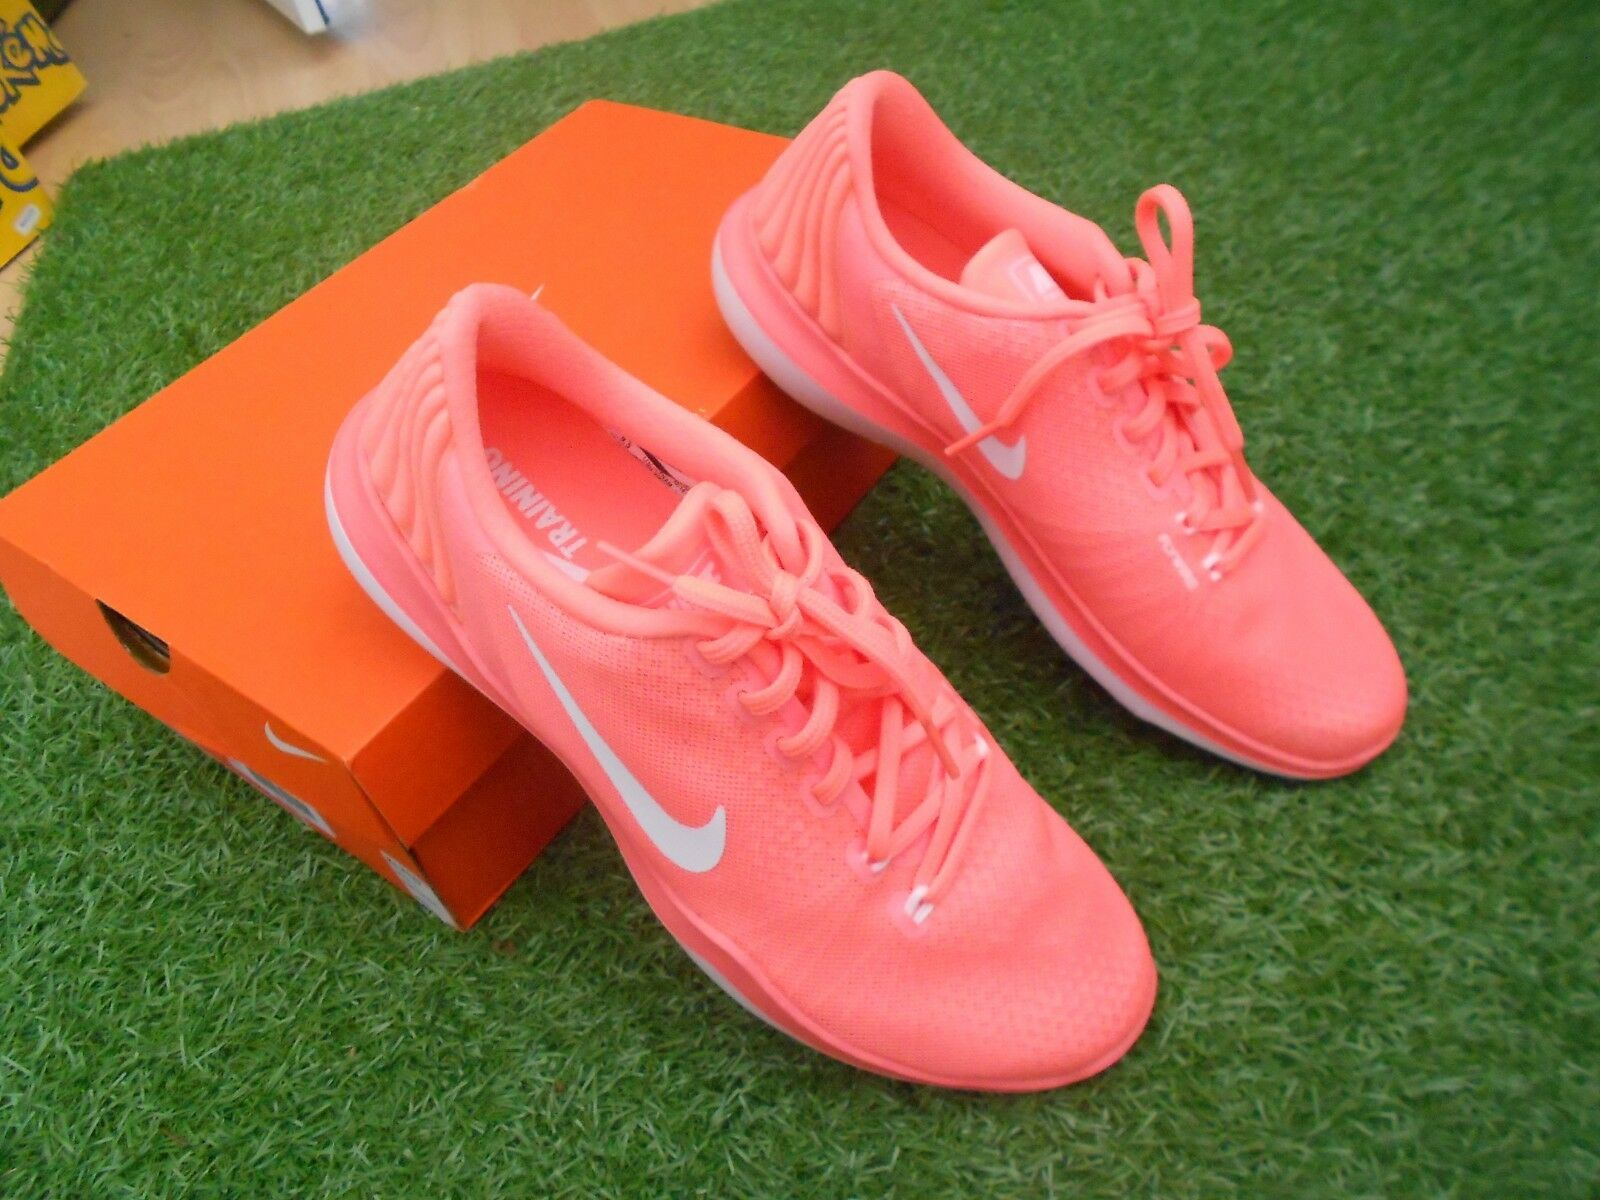 NIKE TRAINING FLEX SUPREME TR5 TRAINERS- SZ 7 - BOXED & NEVER USED